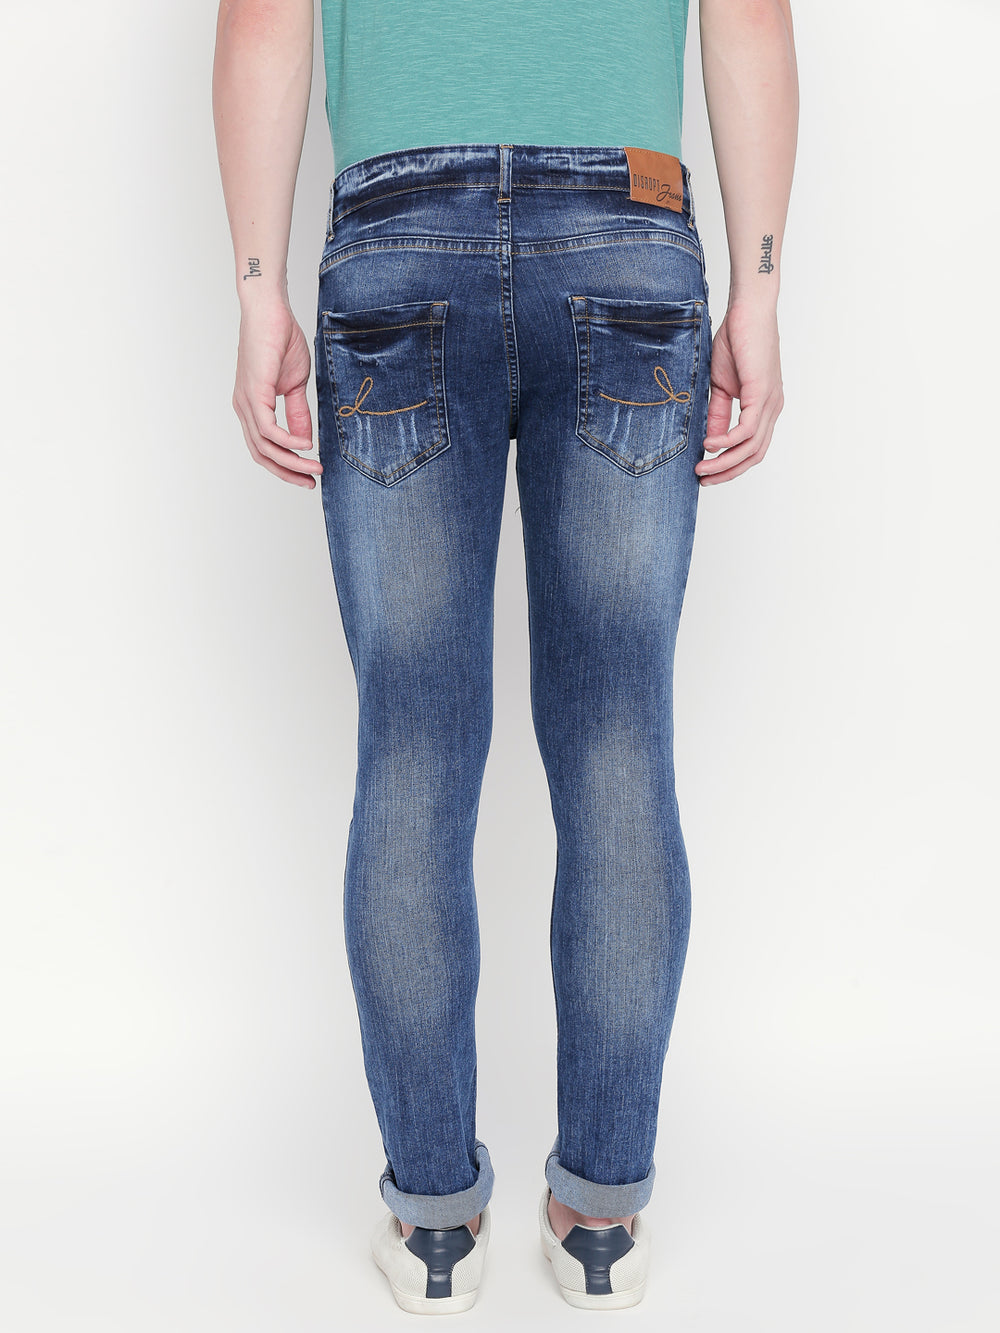 Disrupt Blue Slim-Fit Jeans For Men's